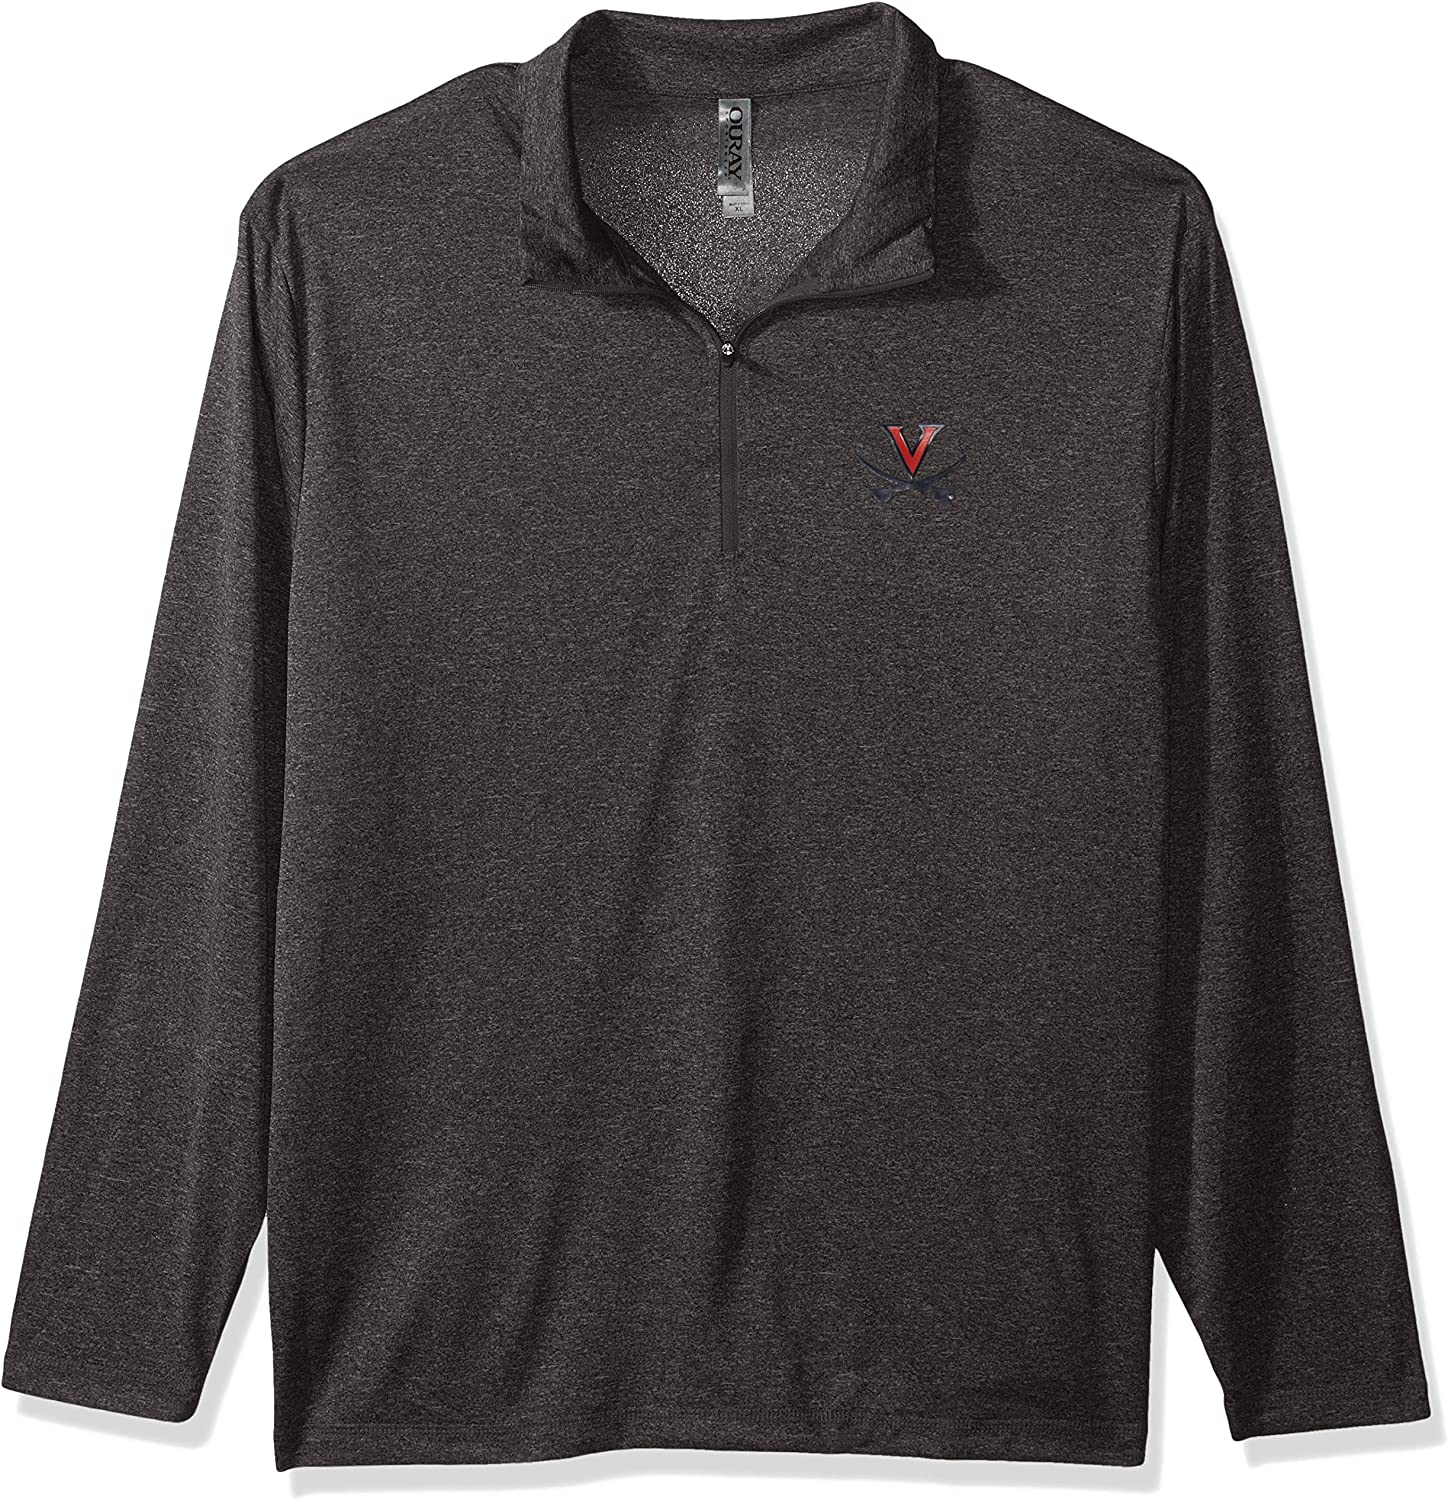 Athletic Heather Ouray Sportswear NCAA Virginia Cavaliers Mens Confluence 1//4 Zip Top Large